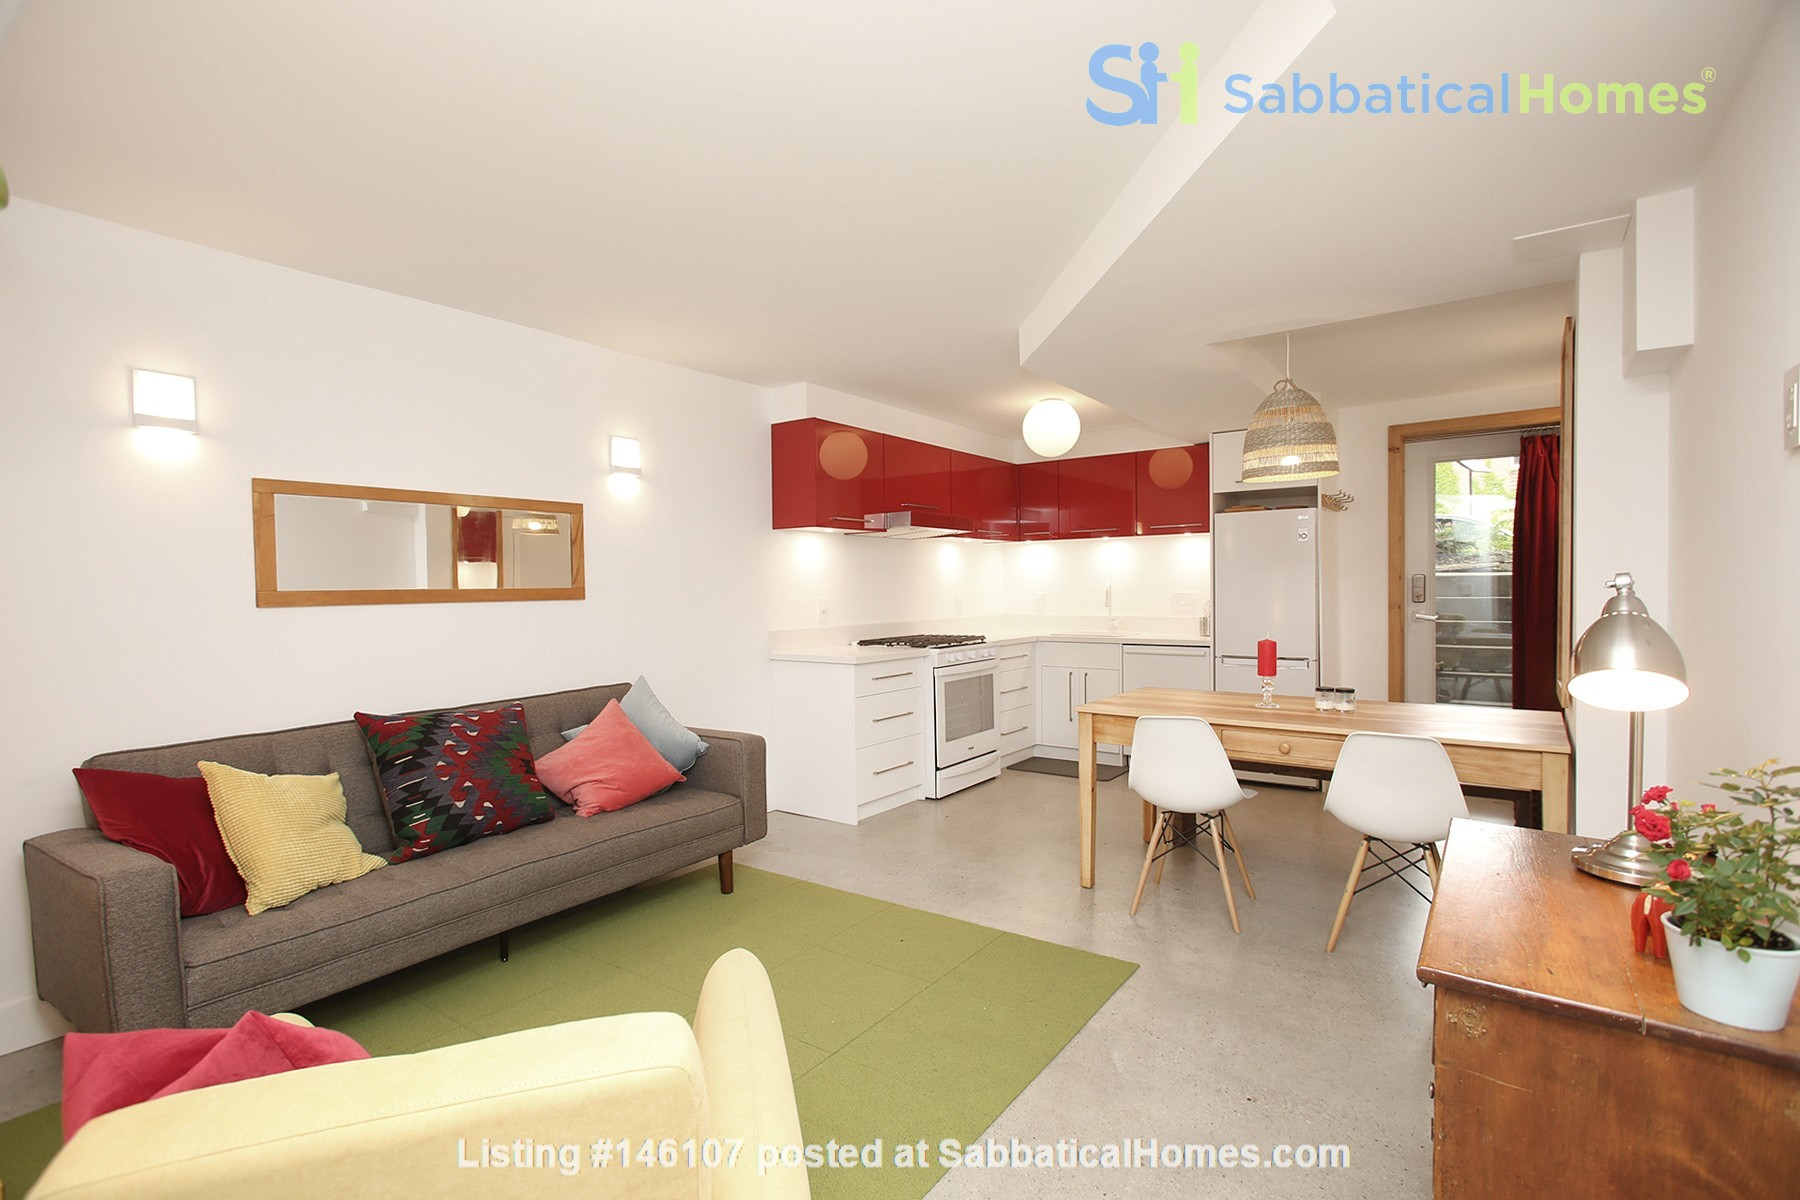 Modern designer space perfect for relaxing and working in! Home Rental in Toronto 0